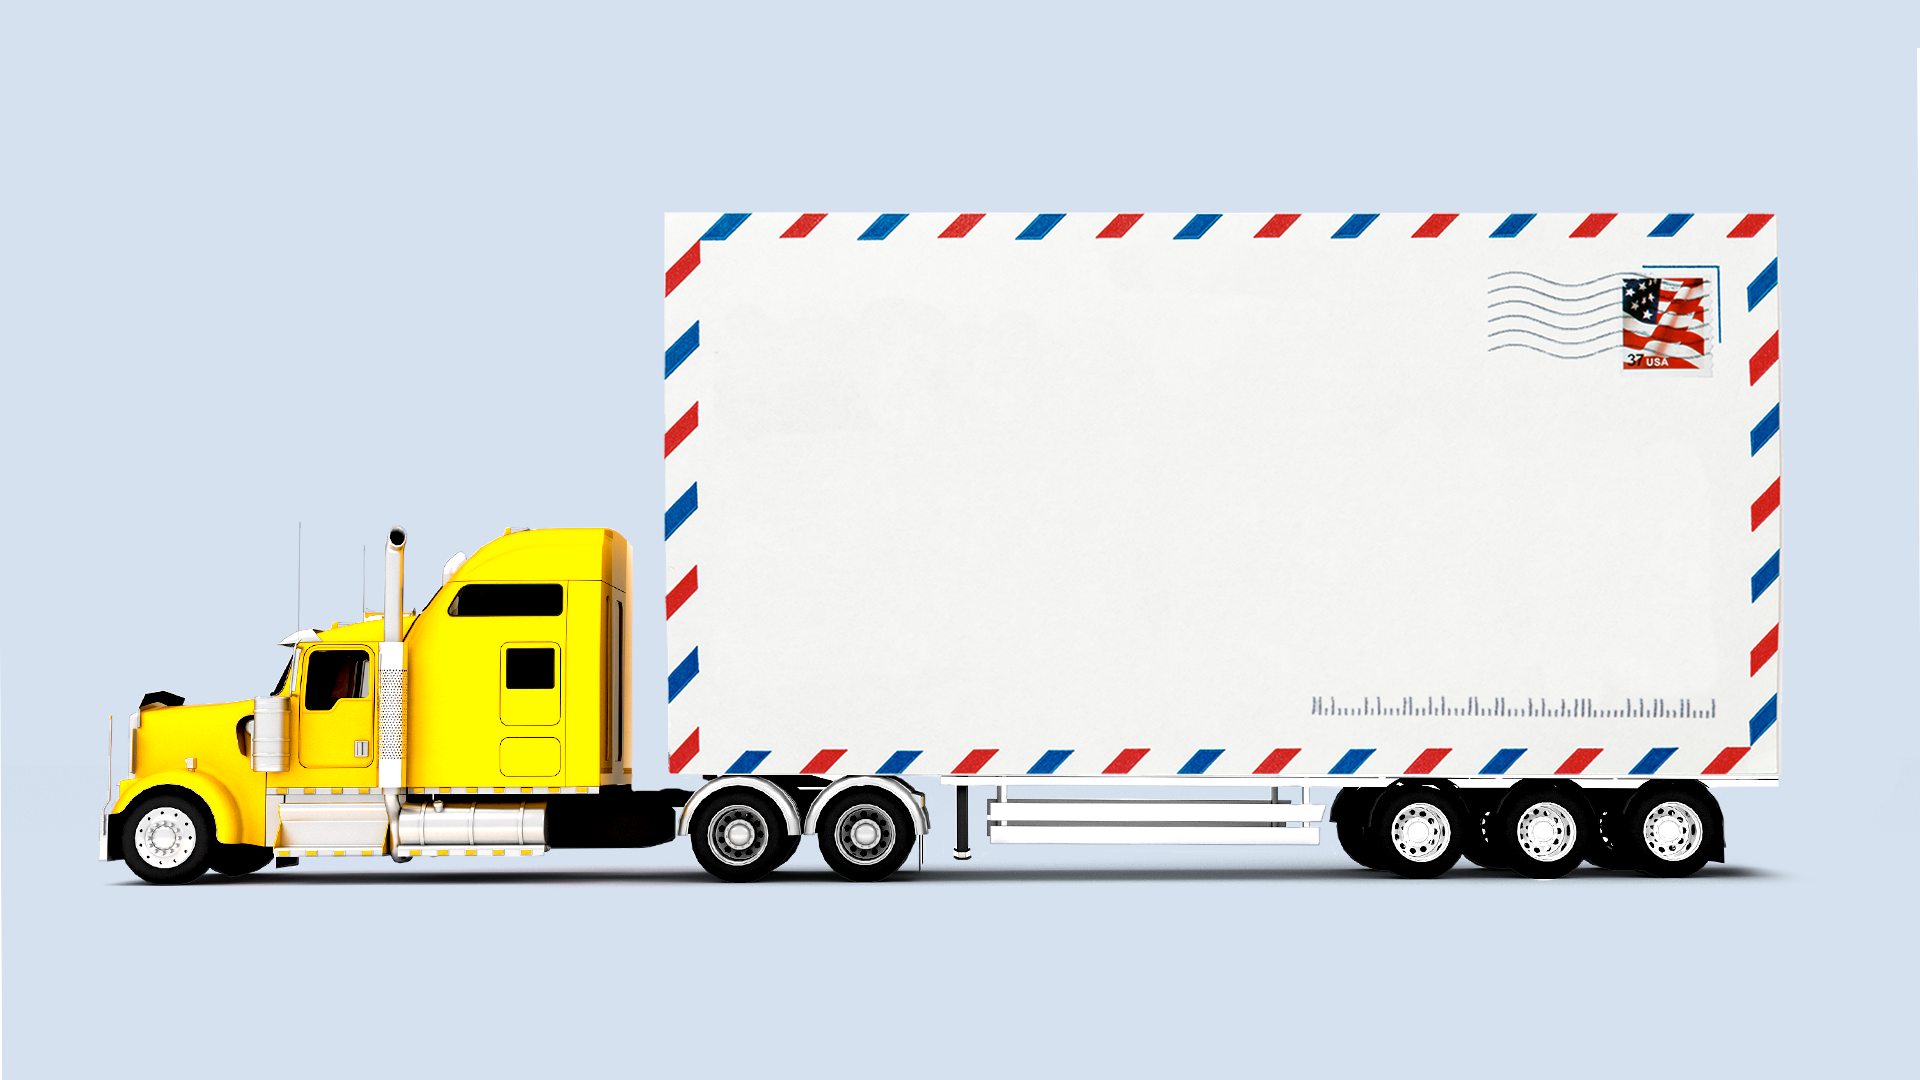 Illustration of an 18-wheeler with an envelope as the semi-trailer.